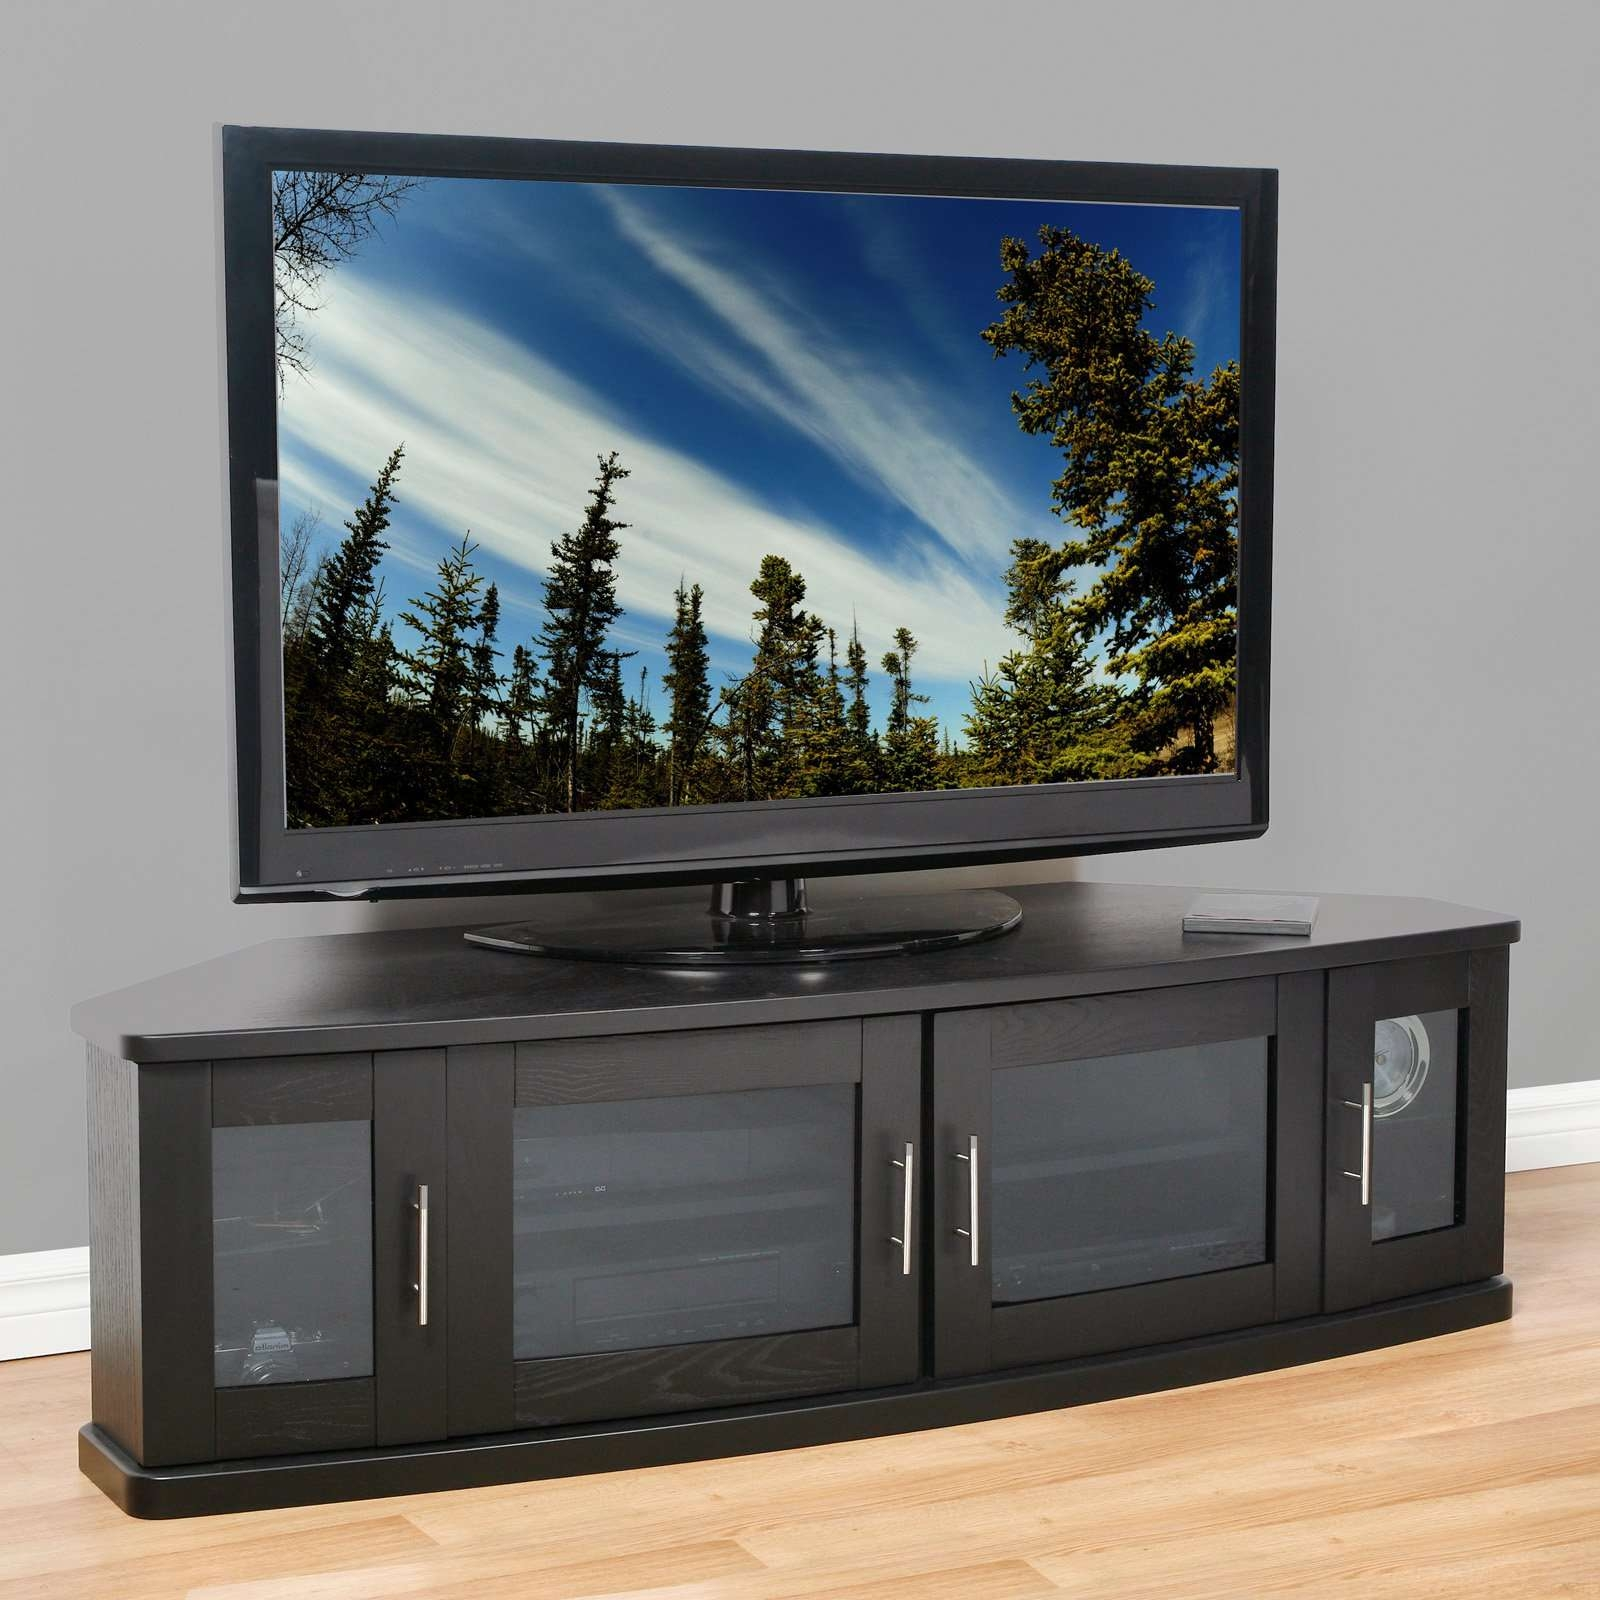 Large Corner Tv Cabinet With 4 Glass Doors And Silver Handle For Silver Corner Tv Stands (View 5 of 15)